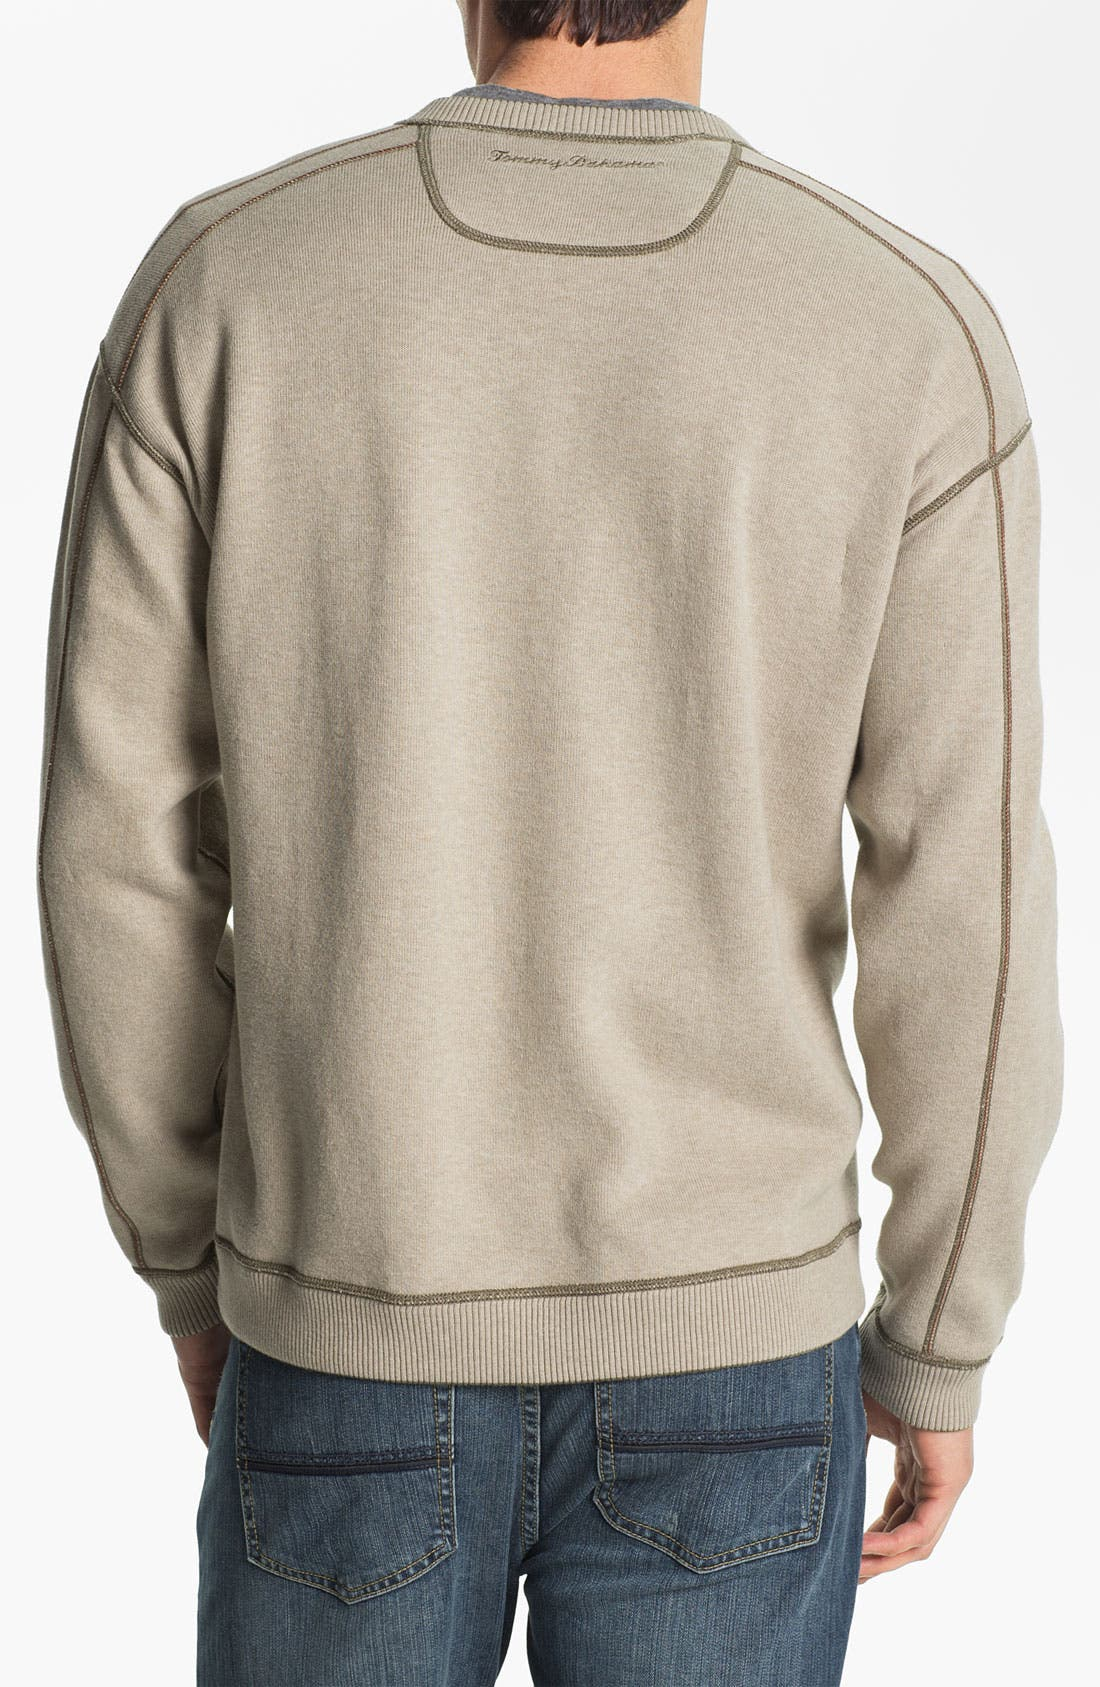 Alternate Image 3  - Tommy Bahama 'Flip Side Pro' Fleece V-Neck Sweatshirt (Big & Tall)